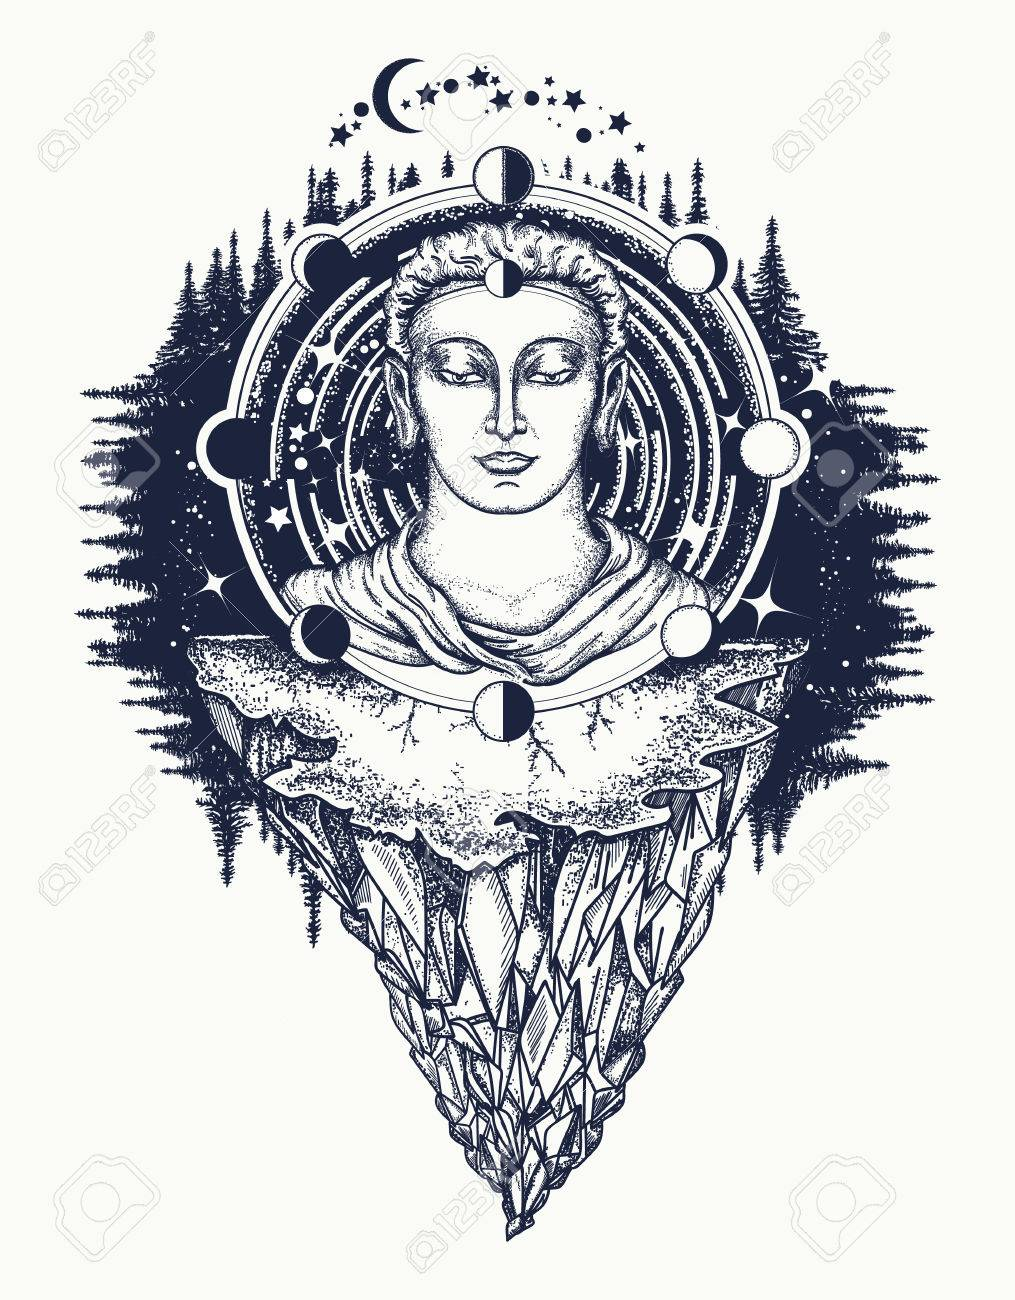 Buddha in deep space t shirt design symbol of immortality buddha in deep space t shirt design symbol of immortality enlightenment religion buycottarizona Image collections